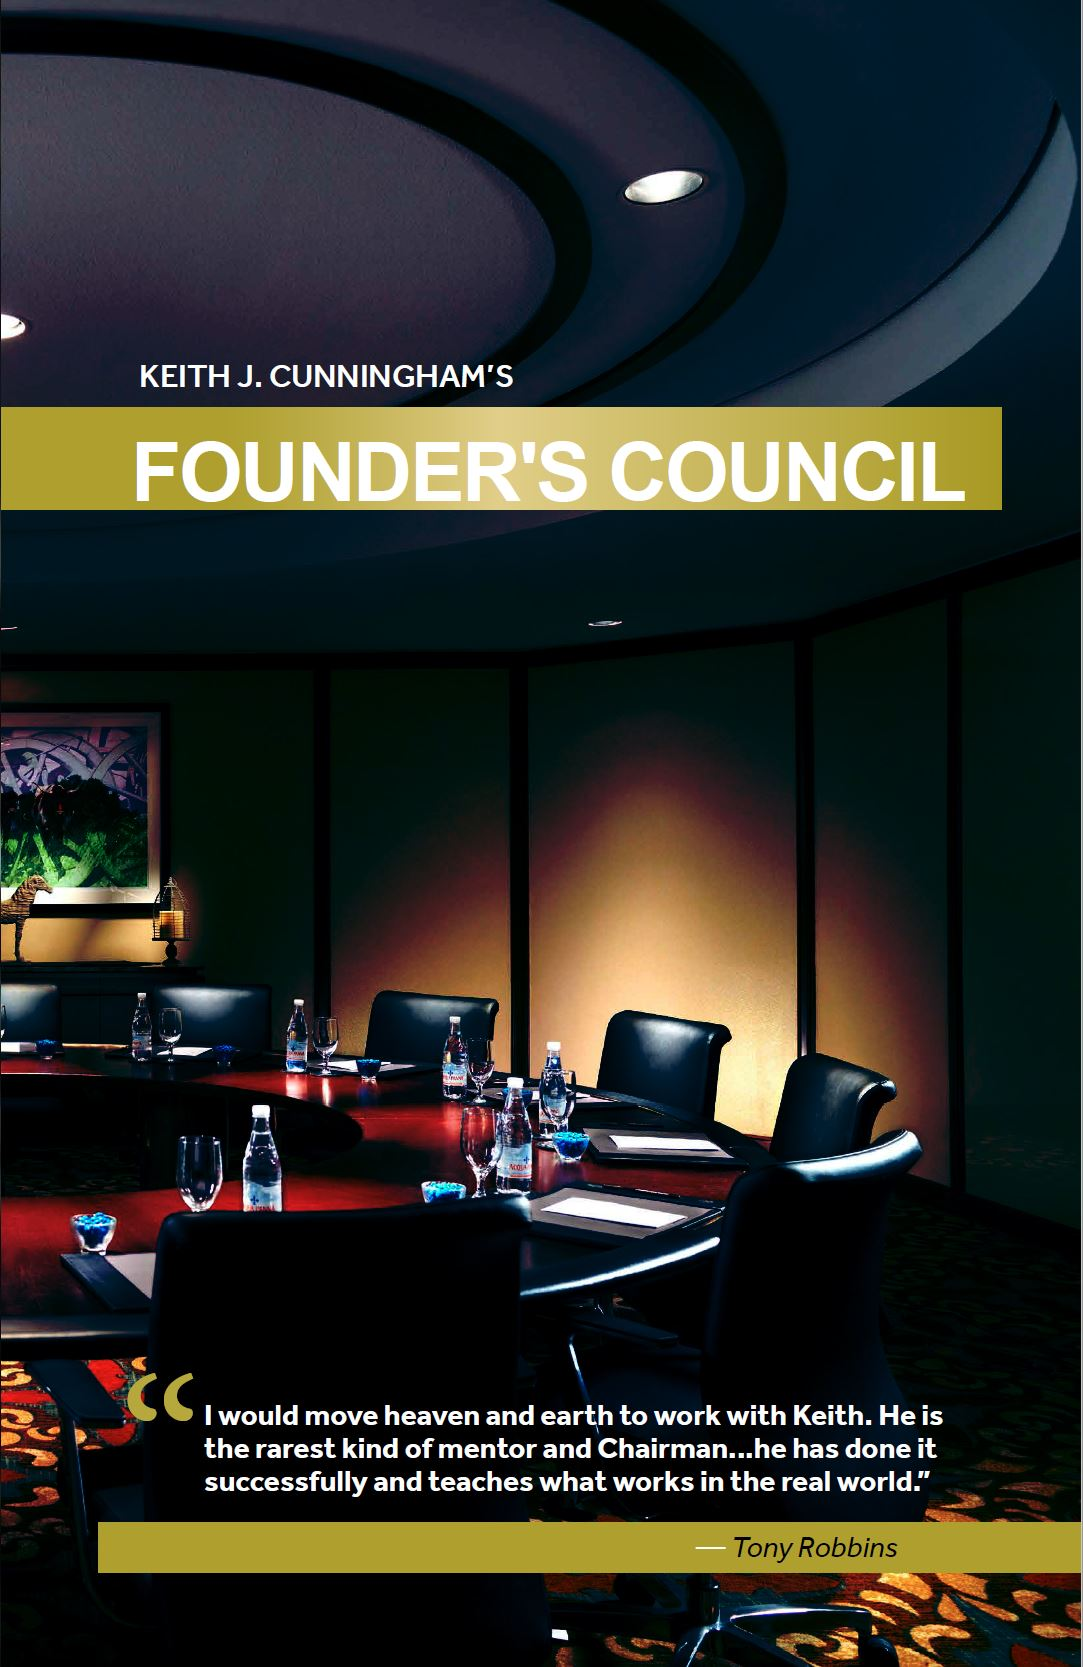 FOUNDERSCOUNCIL